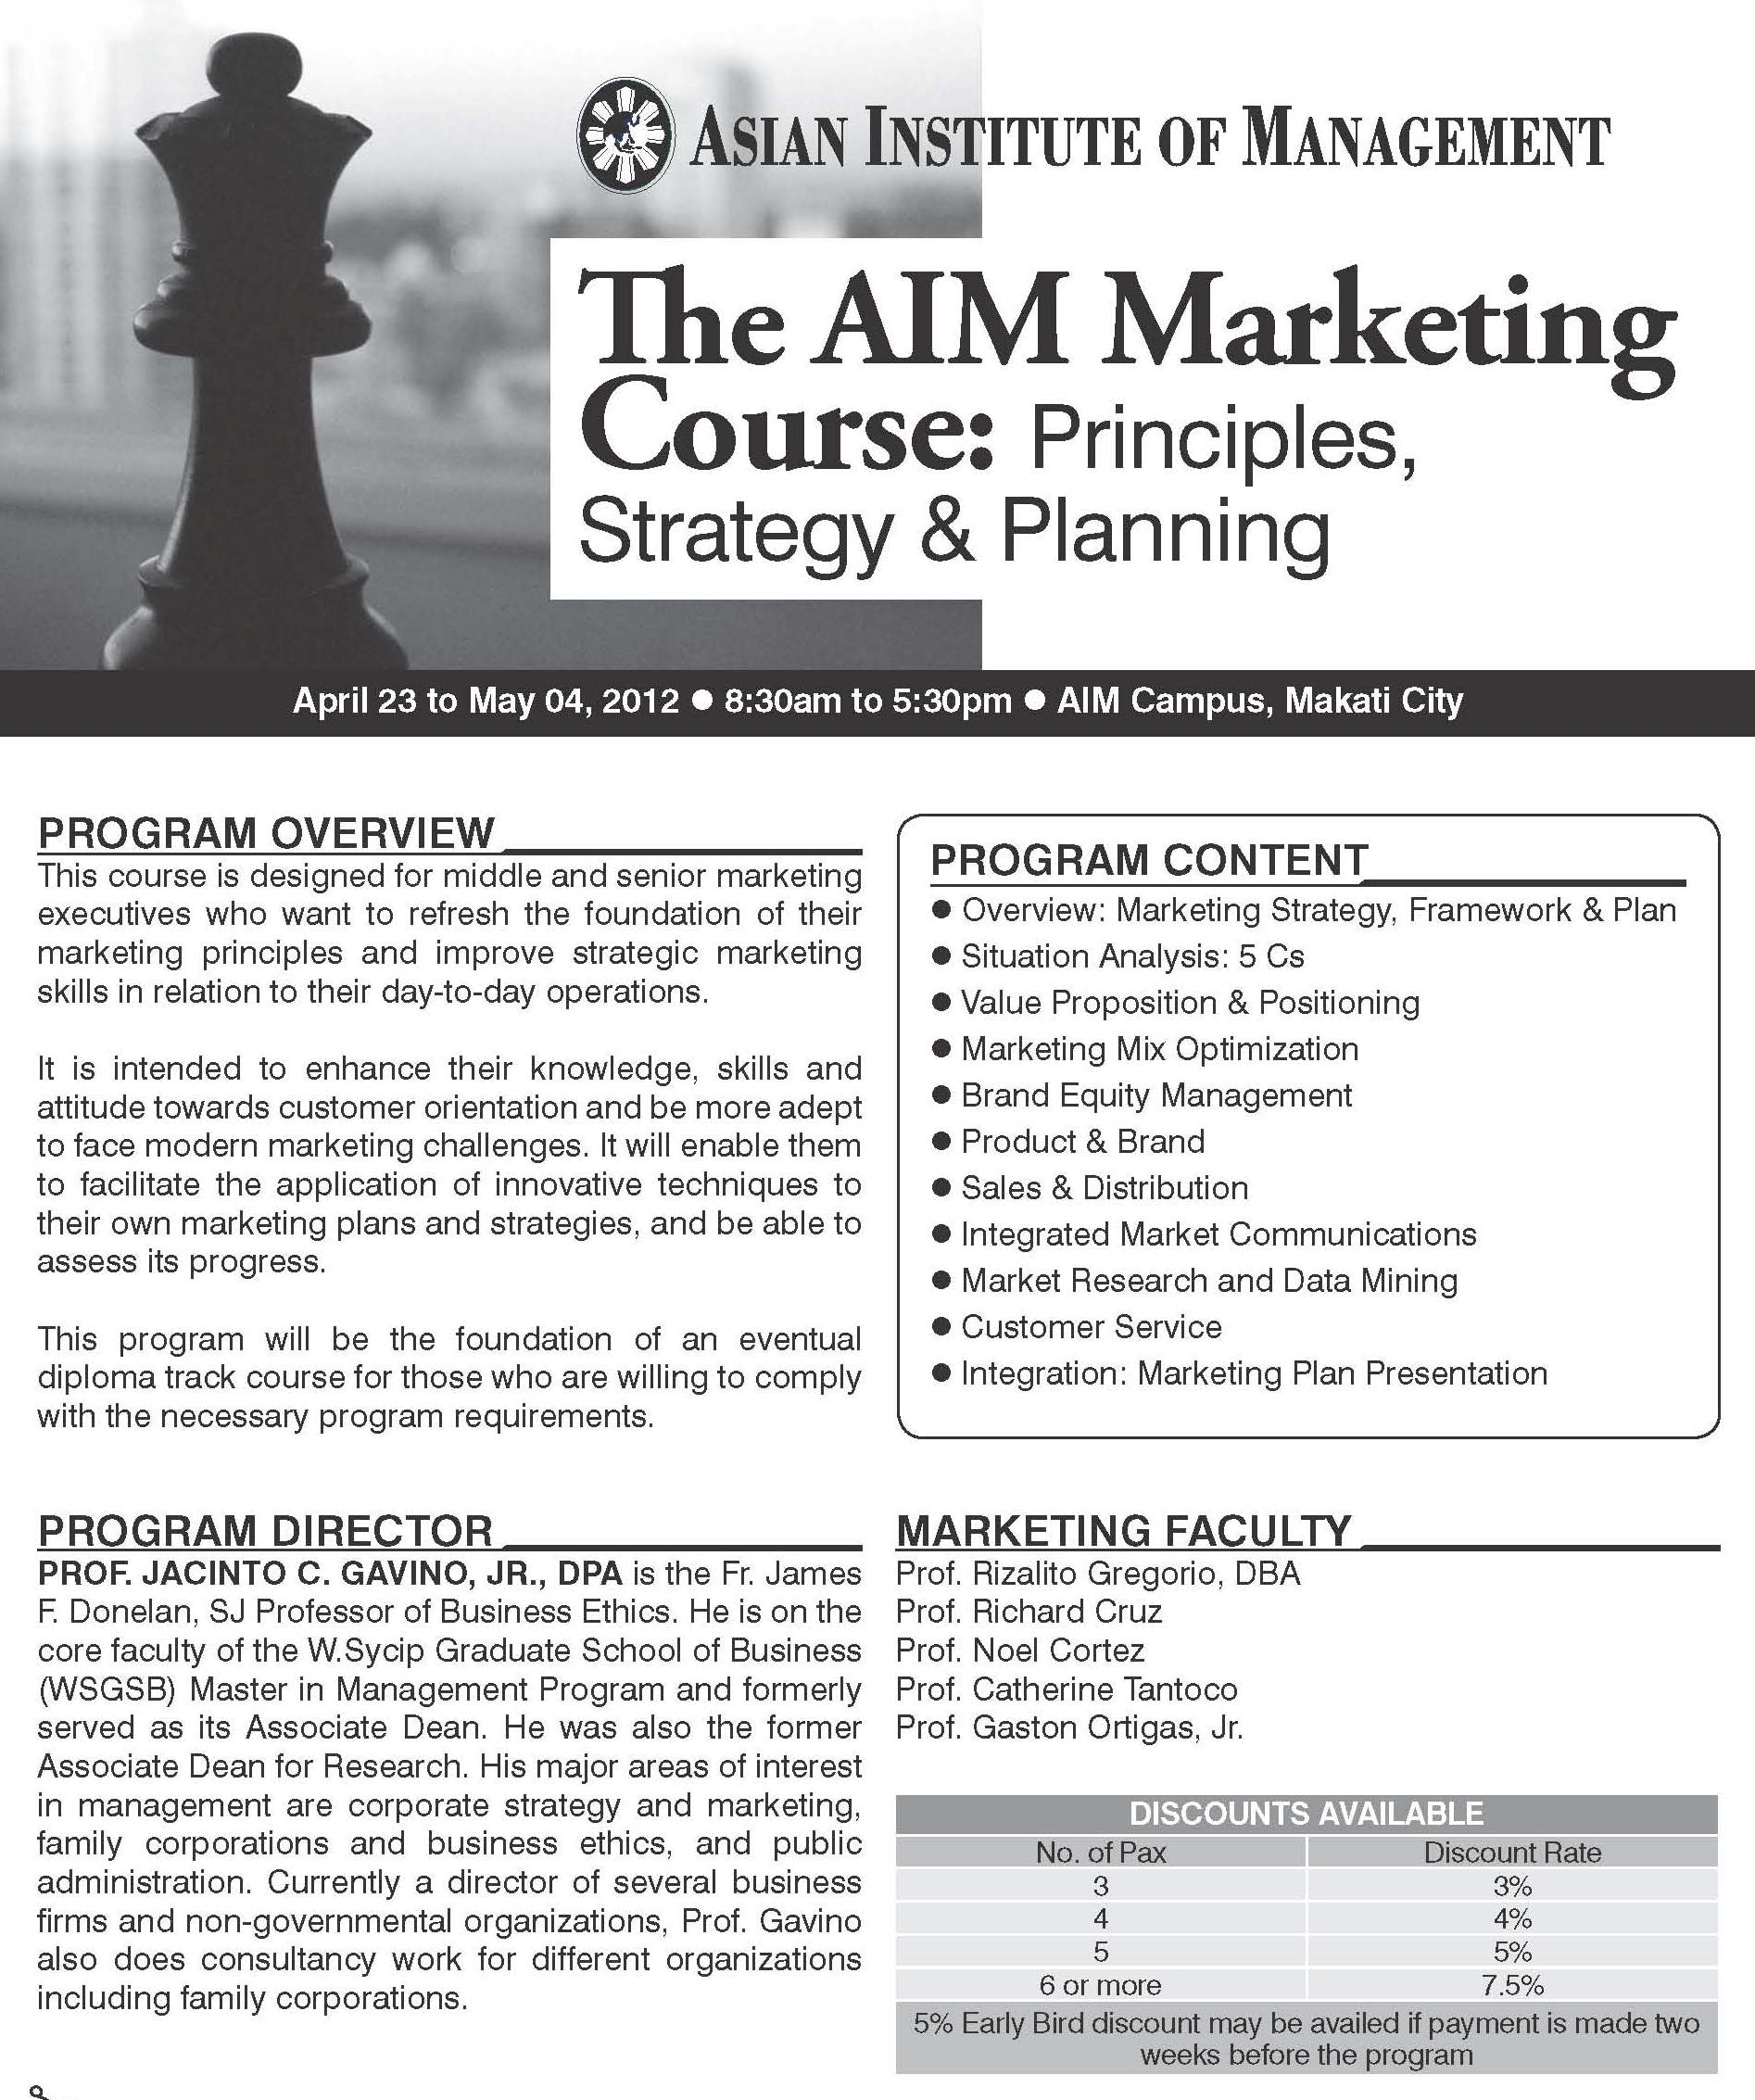 principles of marketing course 101 Collegewide course outline of record mkt 101, principles of marketing course title: principles of marketing course number: mkt 101 prerequisites: demonstrated competency through appropriate.